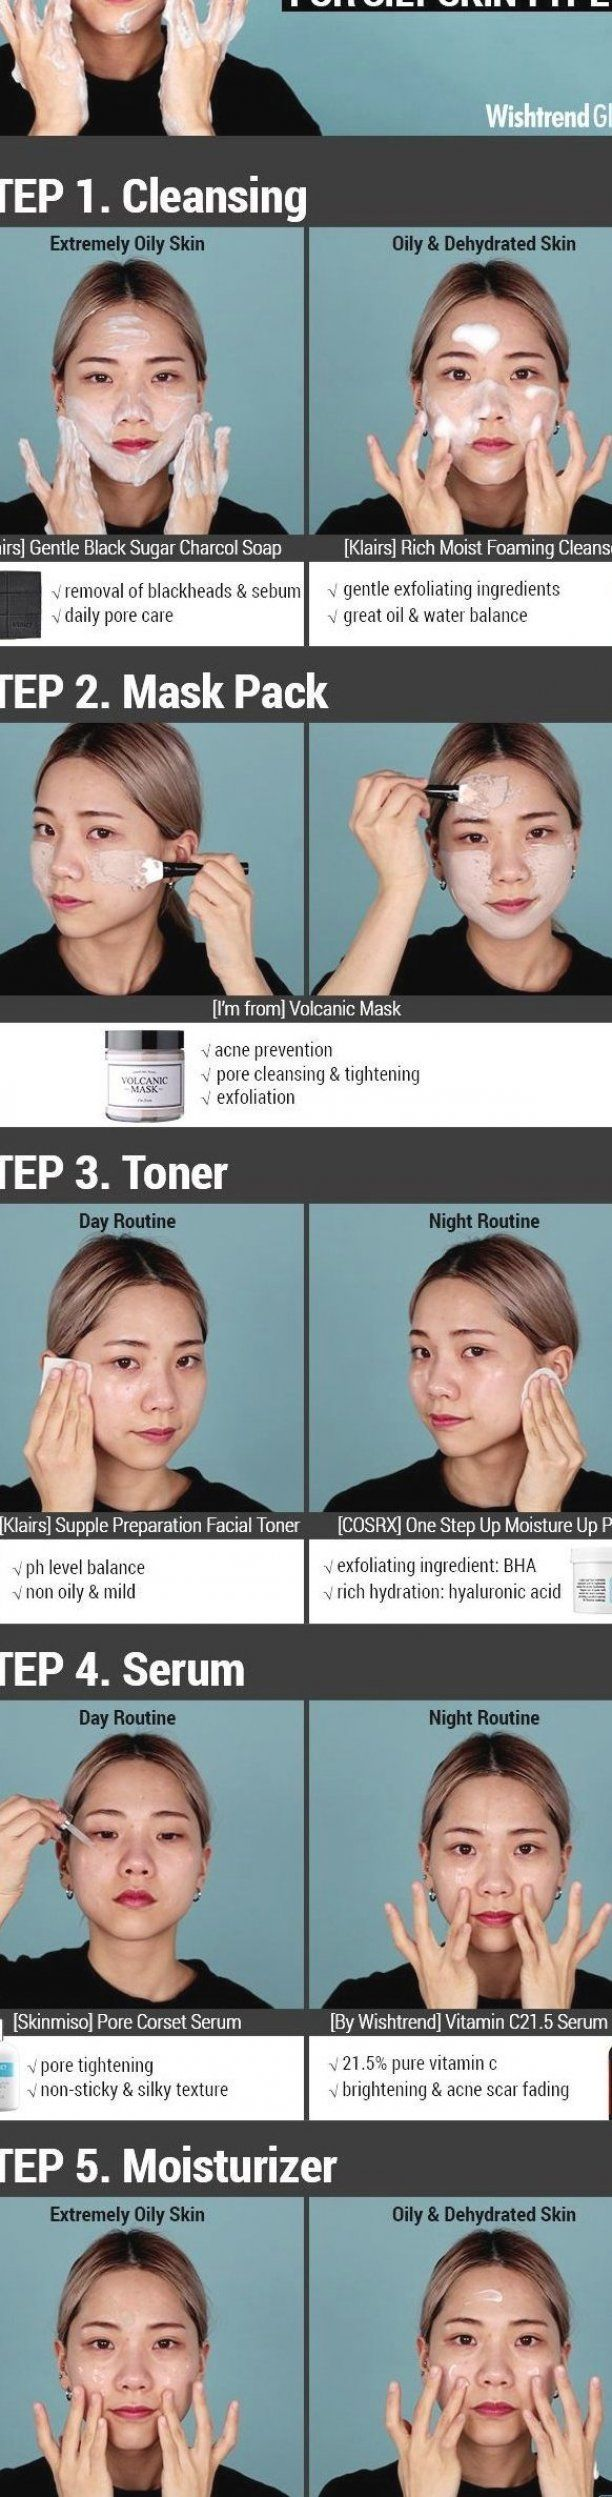 5 Step Korean Skincare Routine For Oily Skin Type Makeup And Skincare Skincare Tips Beauty Beauty Styles Best Beauty Beauty And The Best Health In 2020